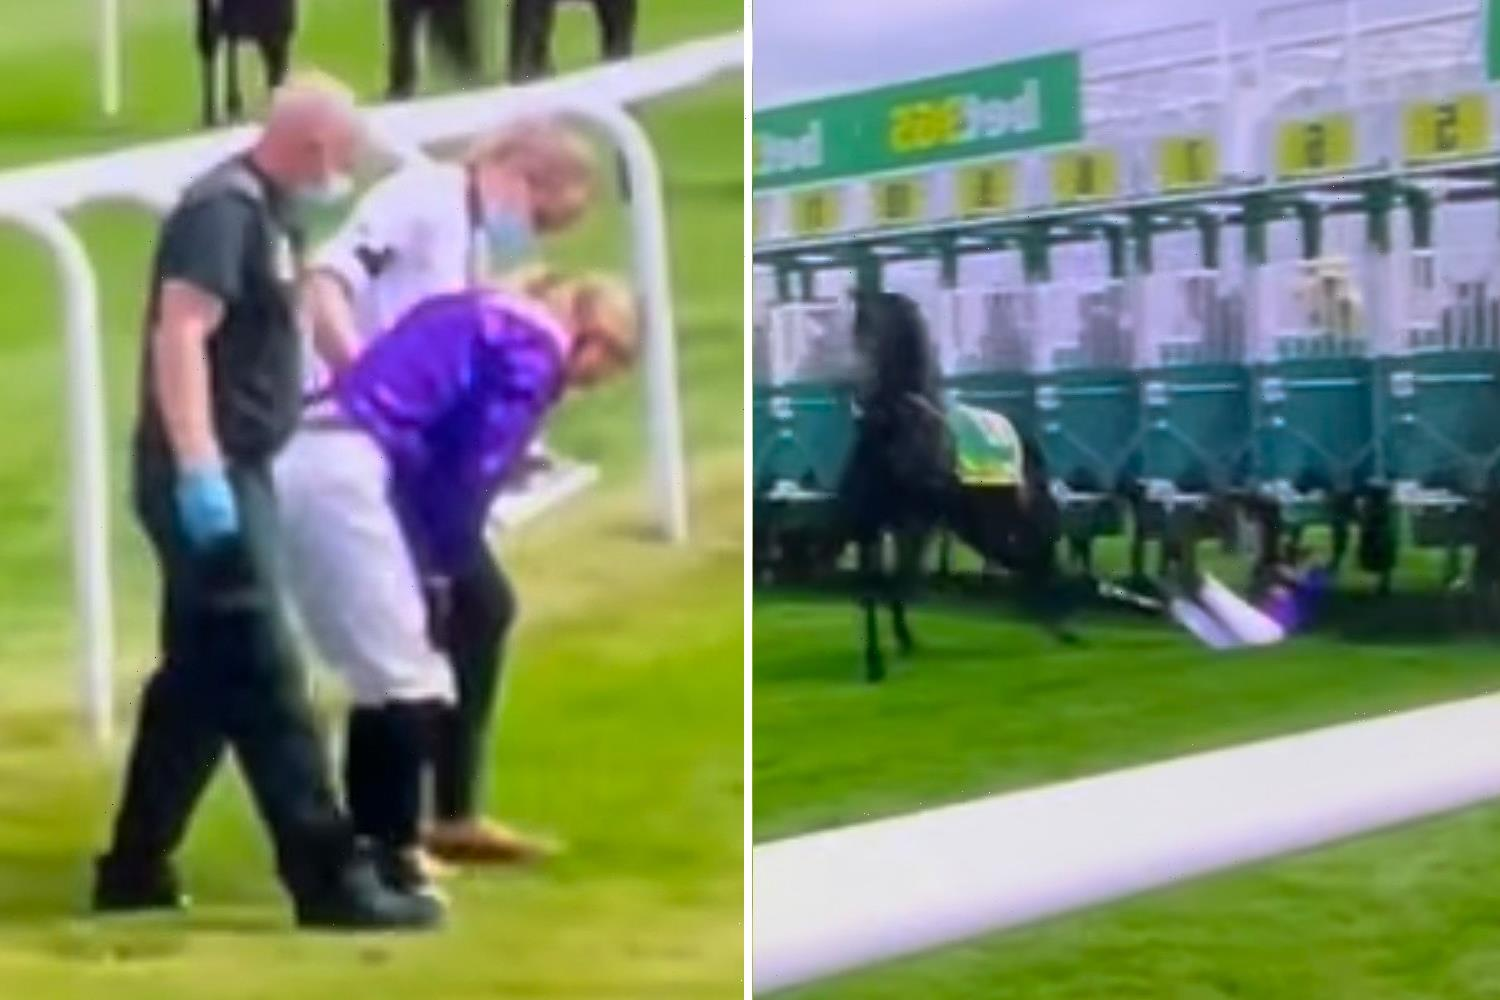 Jockey Saffie Osborne receiving medical treatment after being dragged under stalls by horse at Newmarket live on ITV